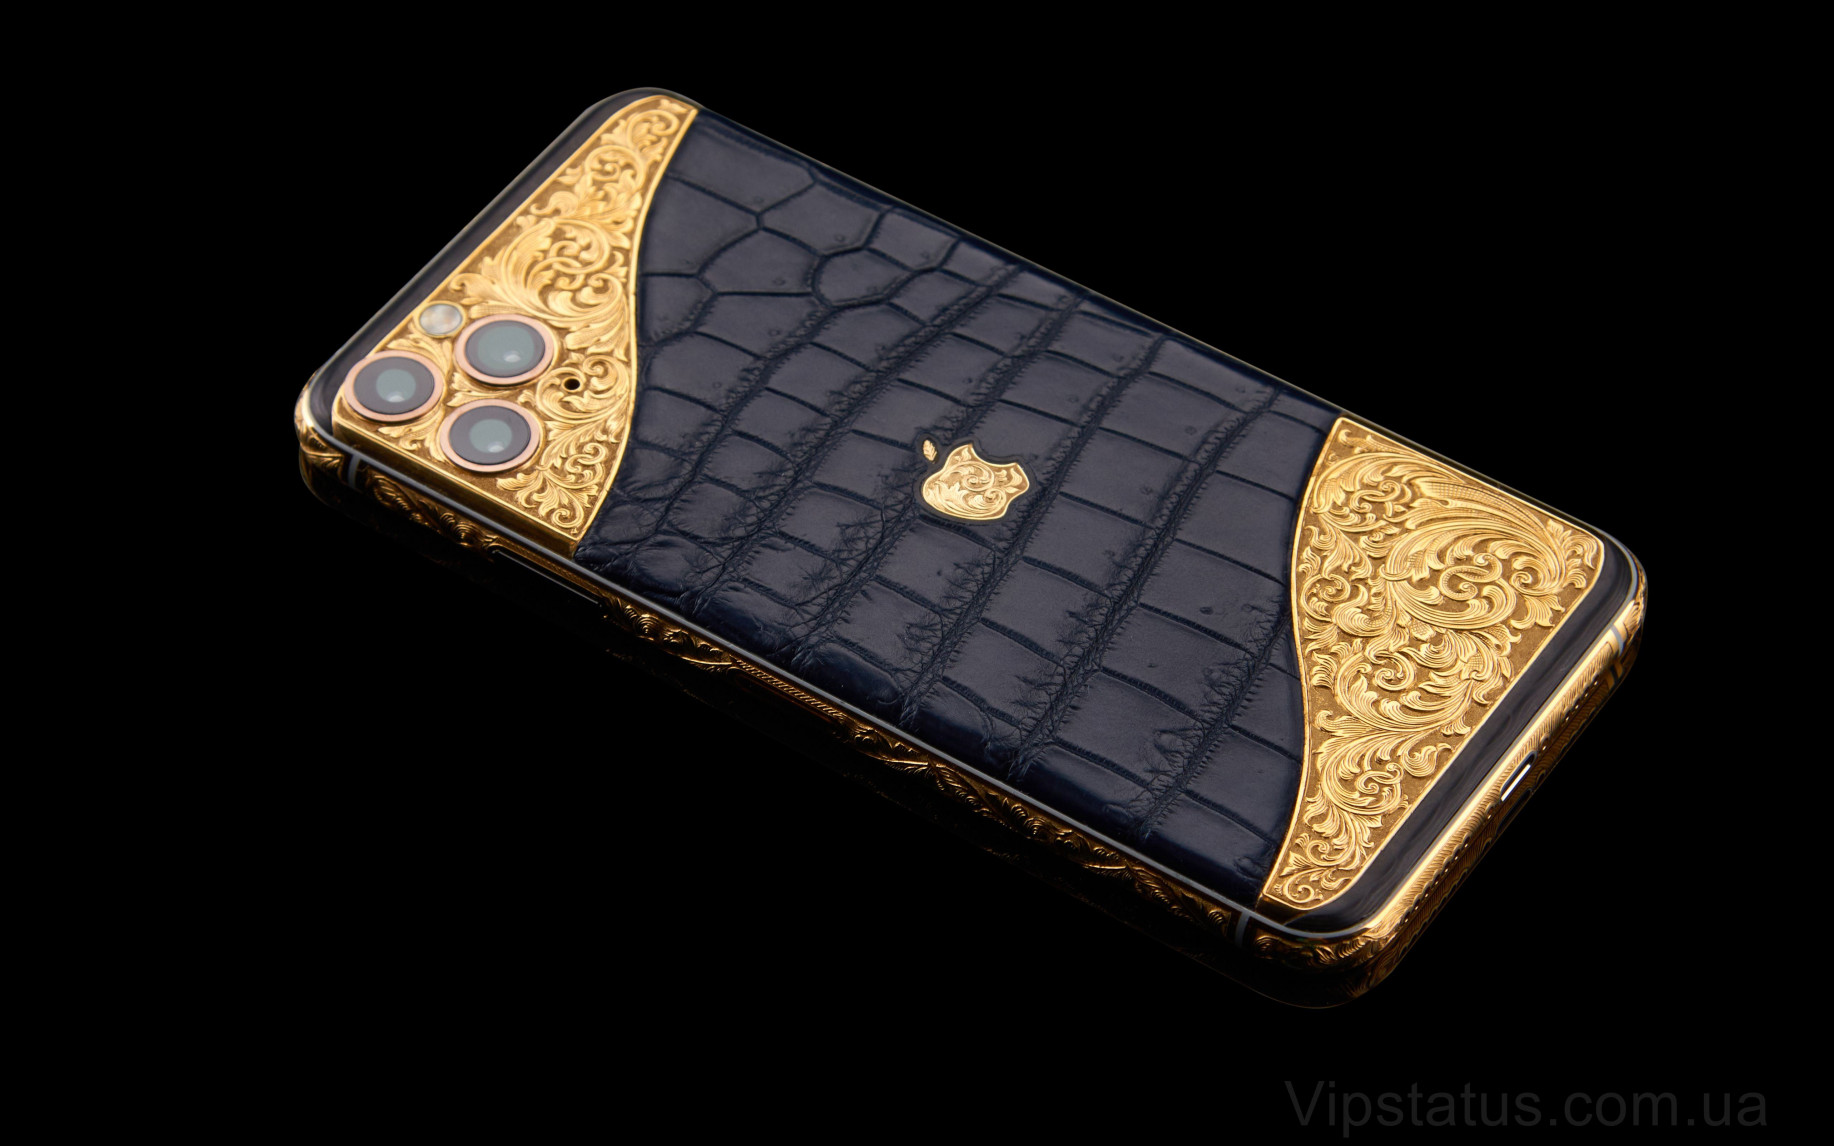 Elite Gold Aristocrate IPHONE 11 PRO 512 GB Gold Aristocrate IPHONE 11 PRO 512 GB image 3